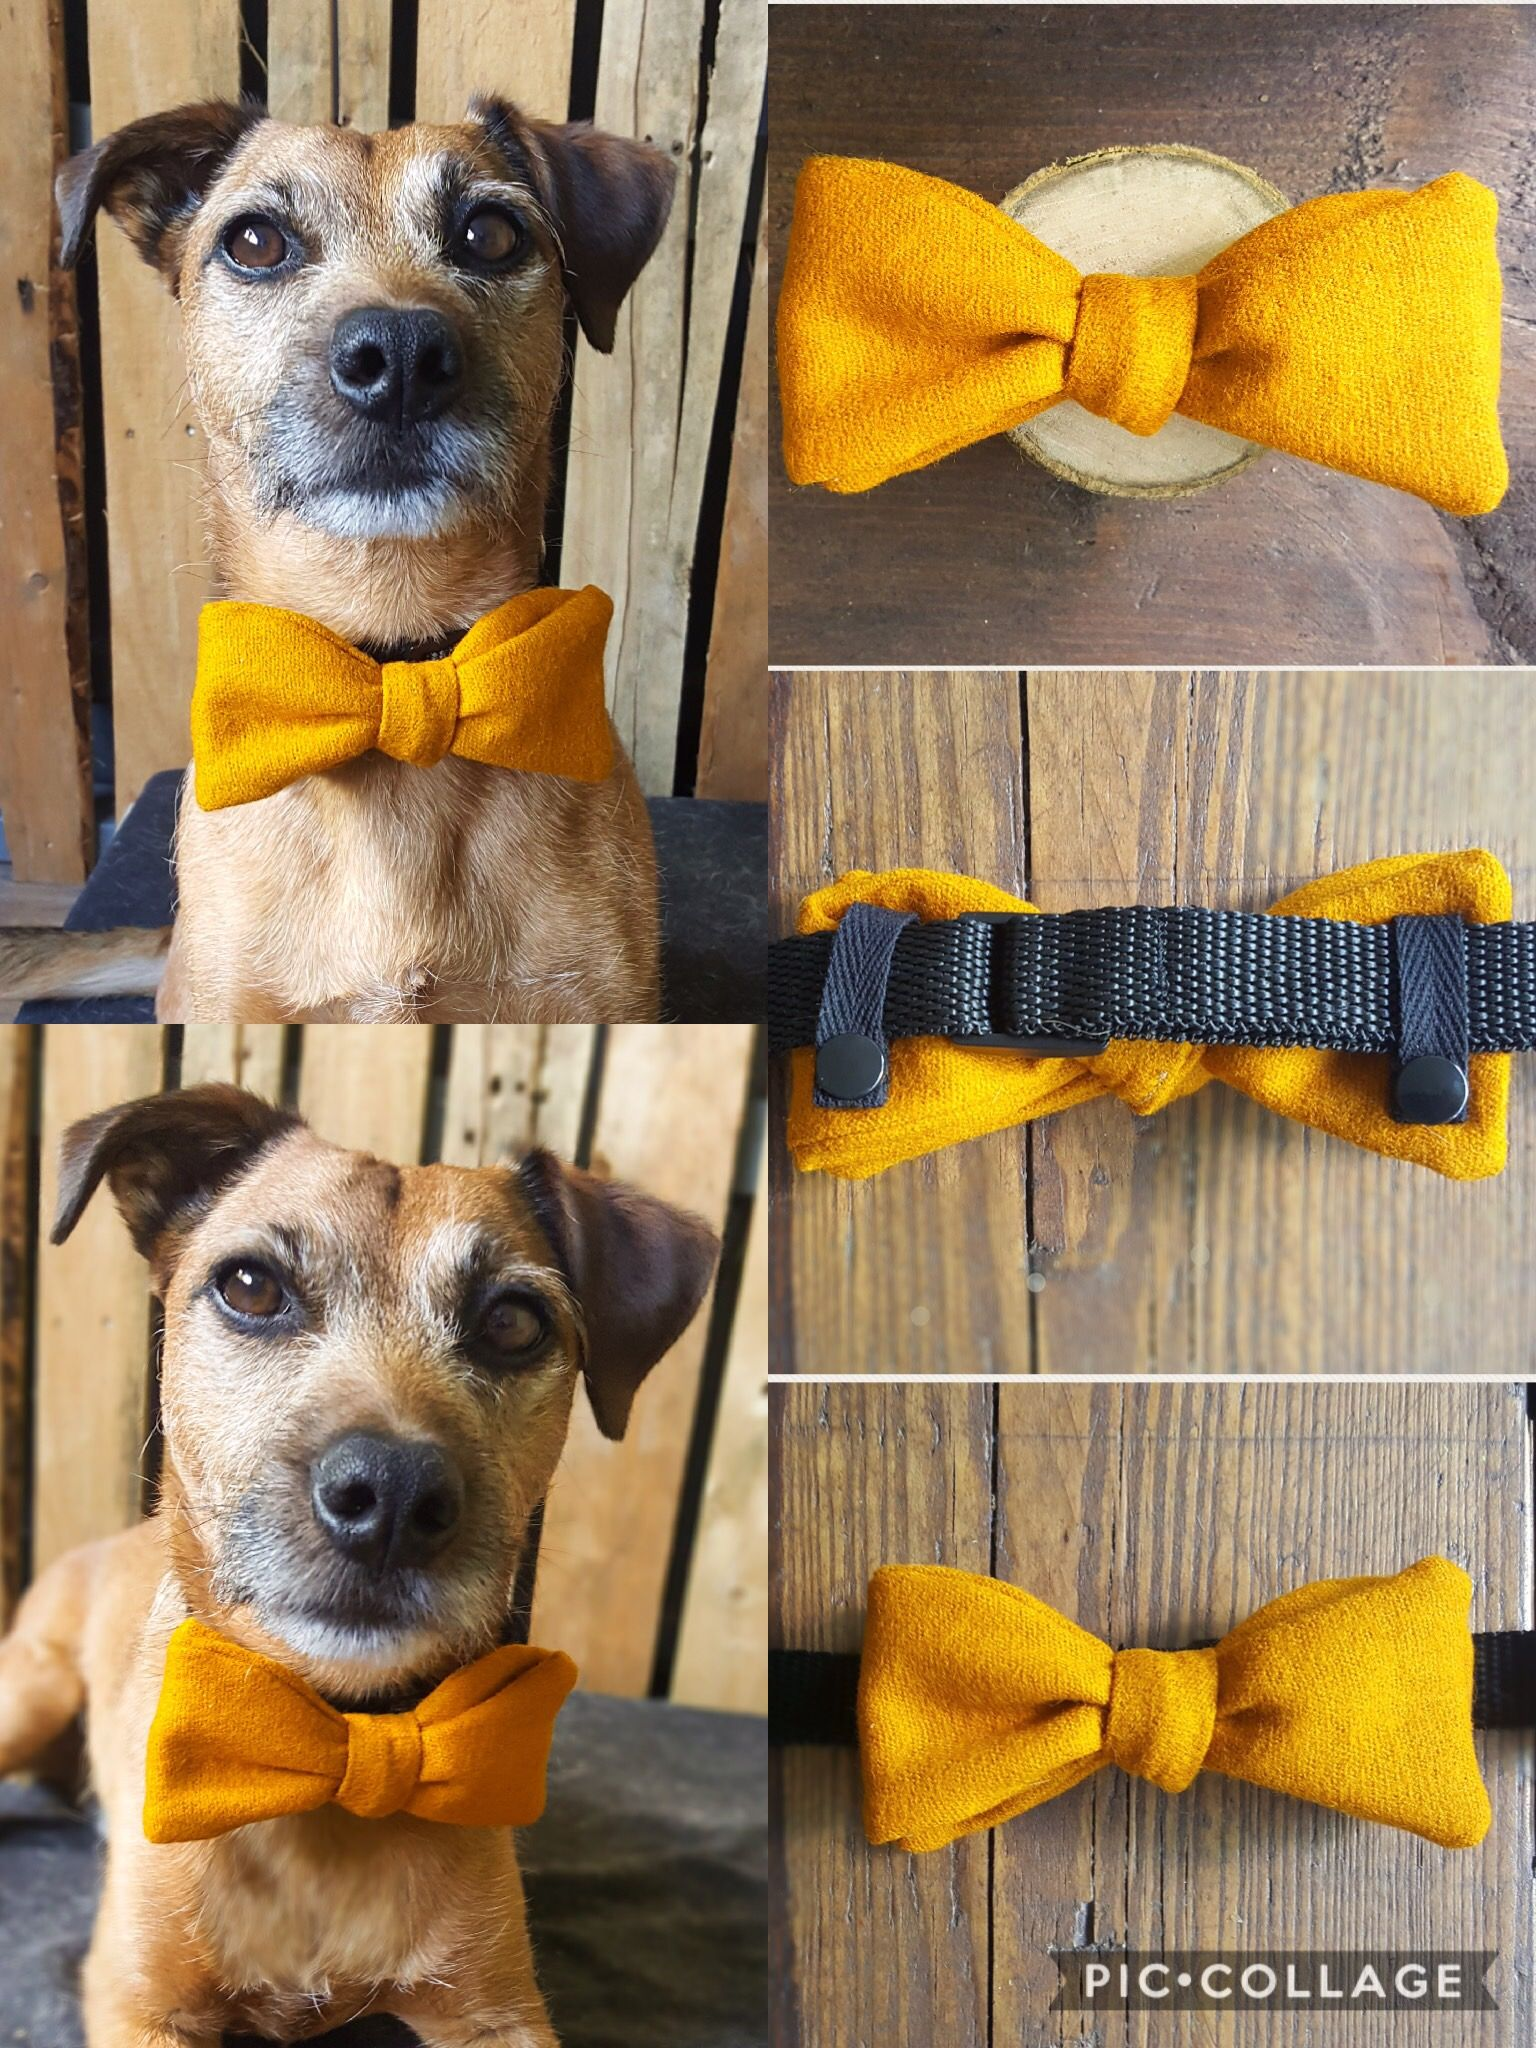 Great Collar Bow Adorable Dog - ac3131ded196d0e6235a526b0c4dd473  2018_605782  .jpg